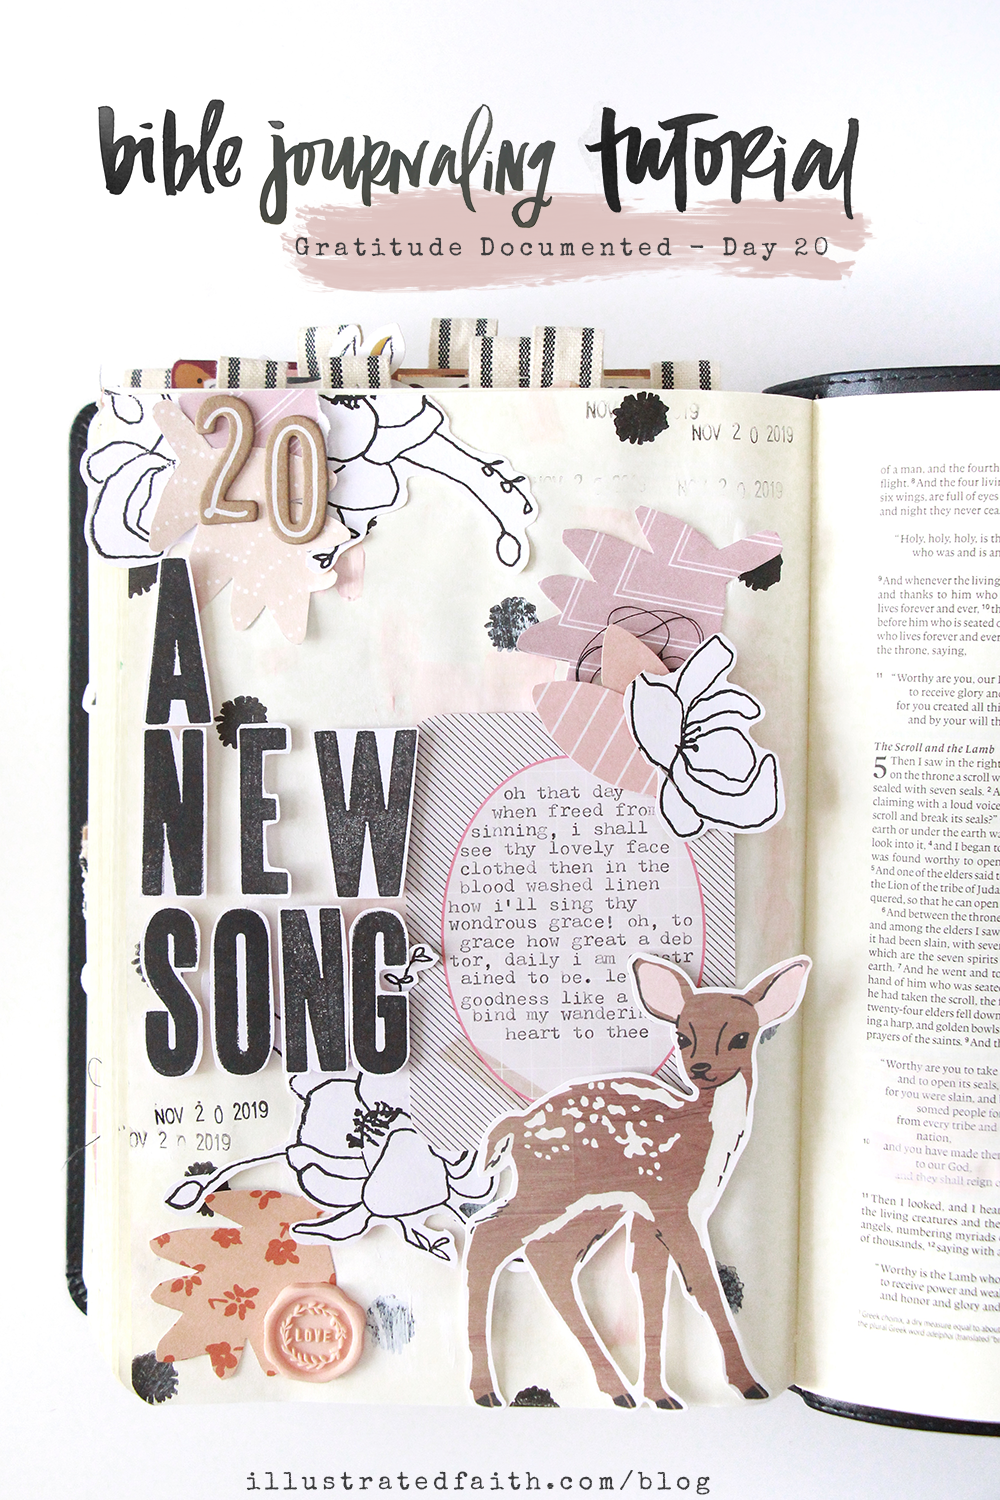 Gratitude Documented Step by Step Bible Journaling Tutorial layering paper pieces by Bekah Lynn – A NEW SONG – Revelation 5:9